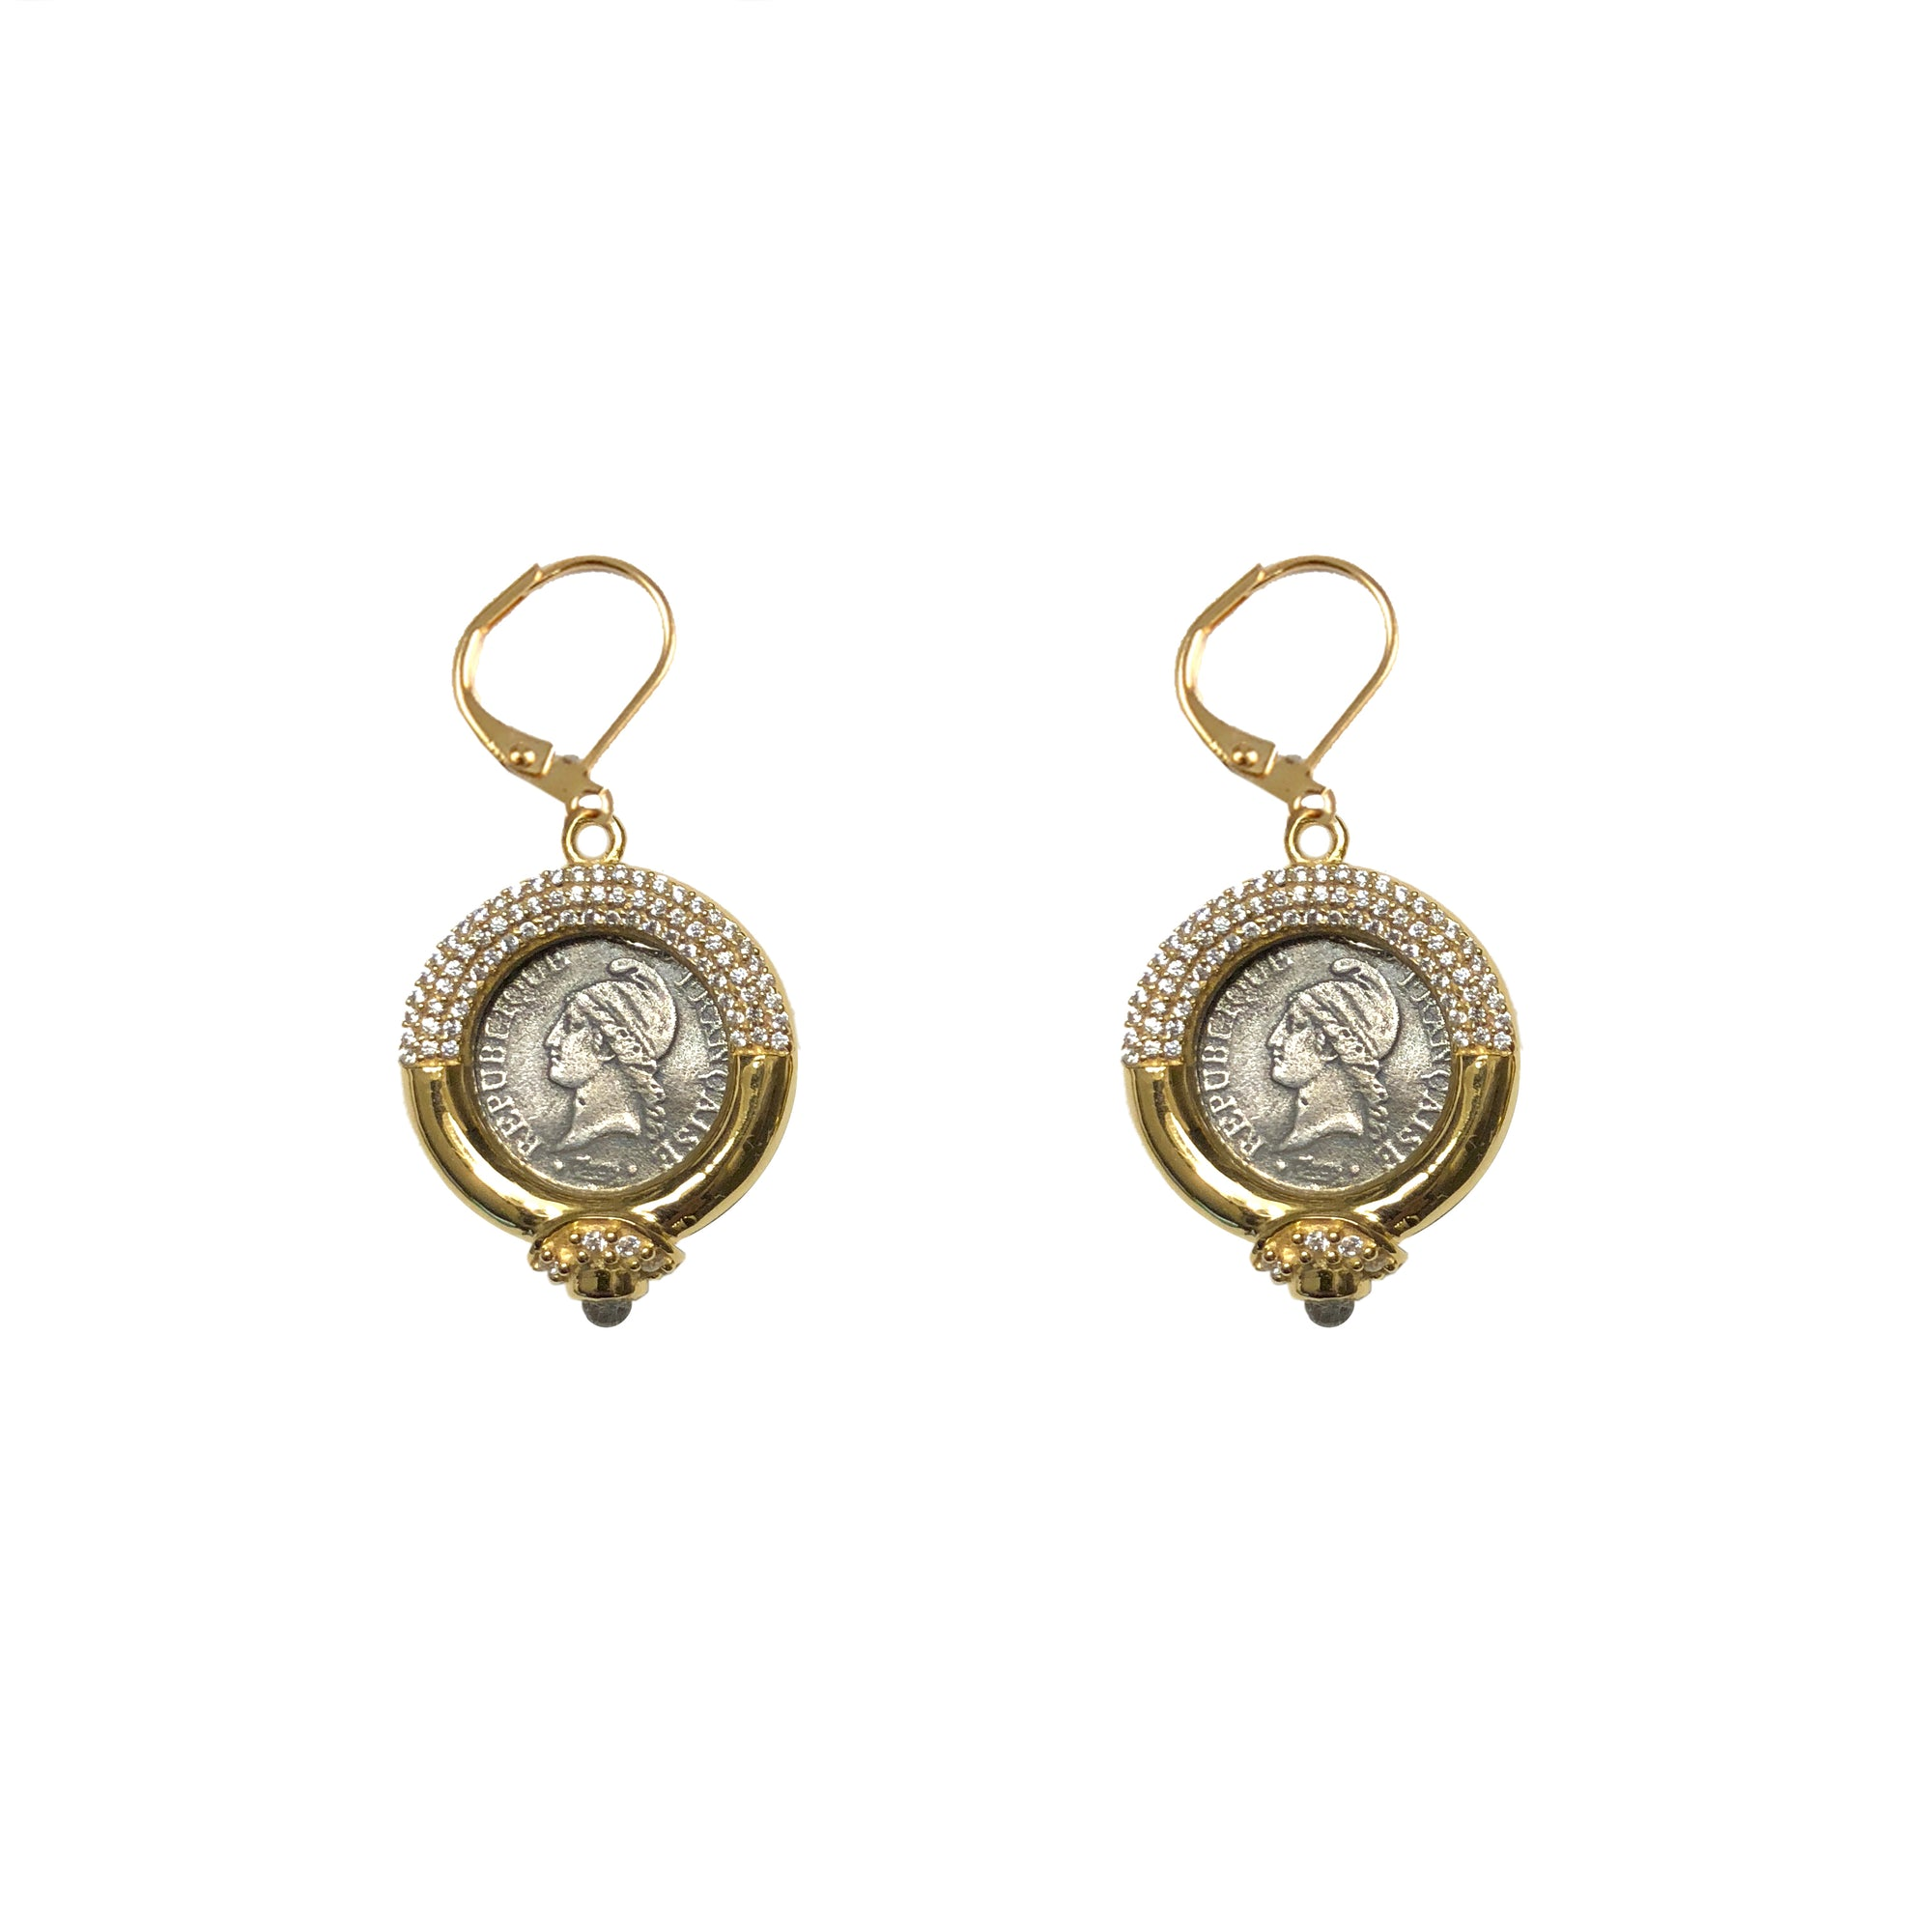 GOLD FRAME VS MINI DUPRÉ DROP EARRINGS